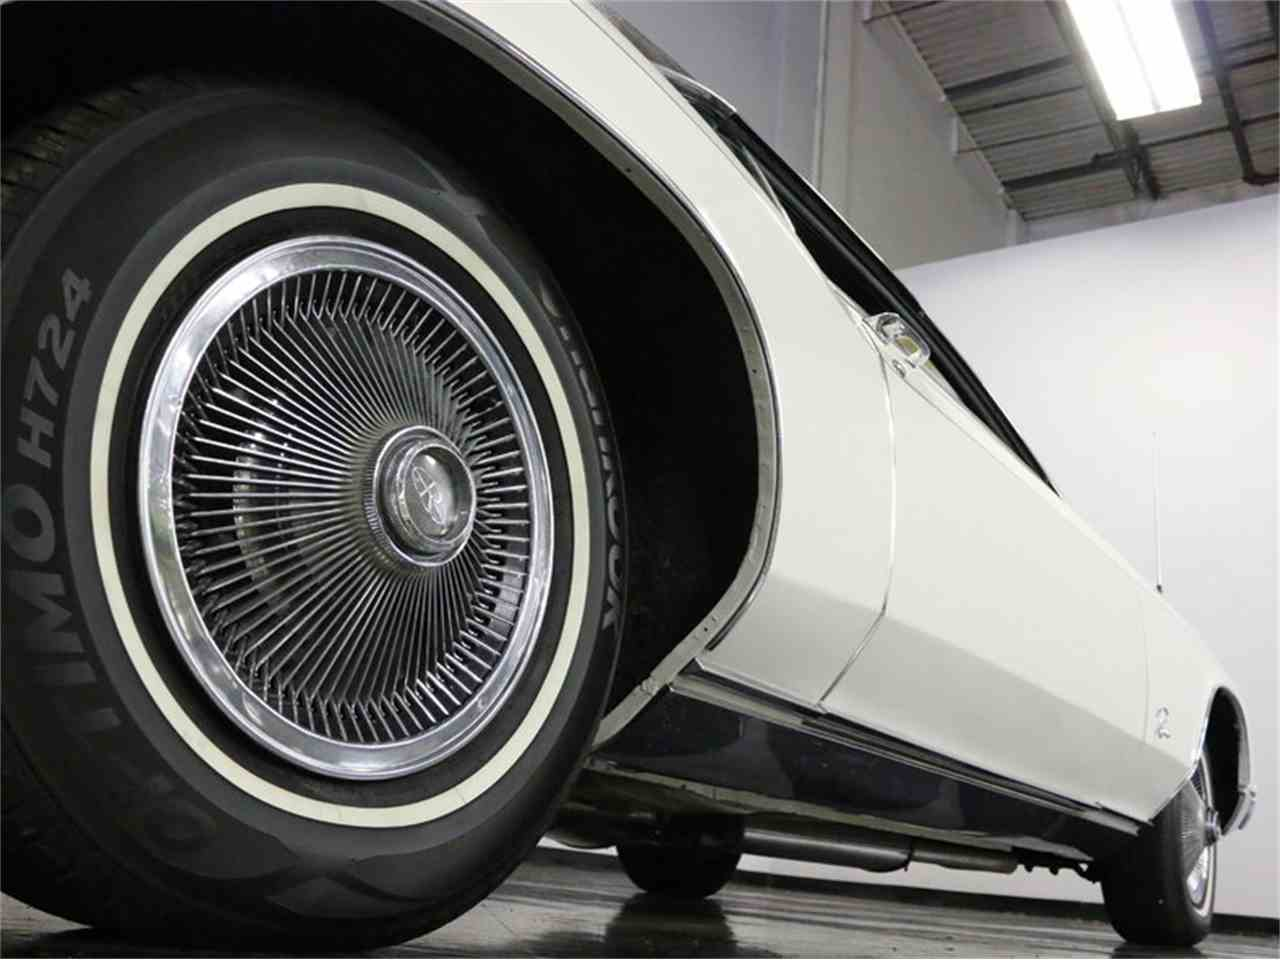 Large Picture of Classic 1967 Buick Riviera located in Texas Offered by Streetside Classics - Dallas / Fort Worth - M5N7